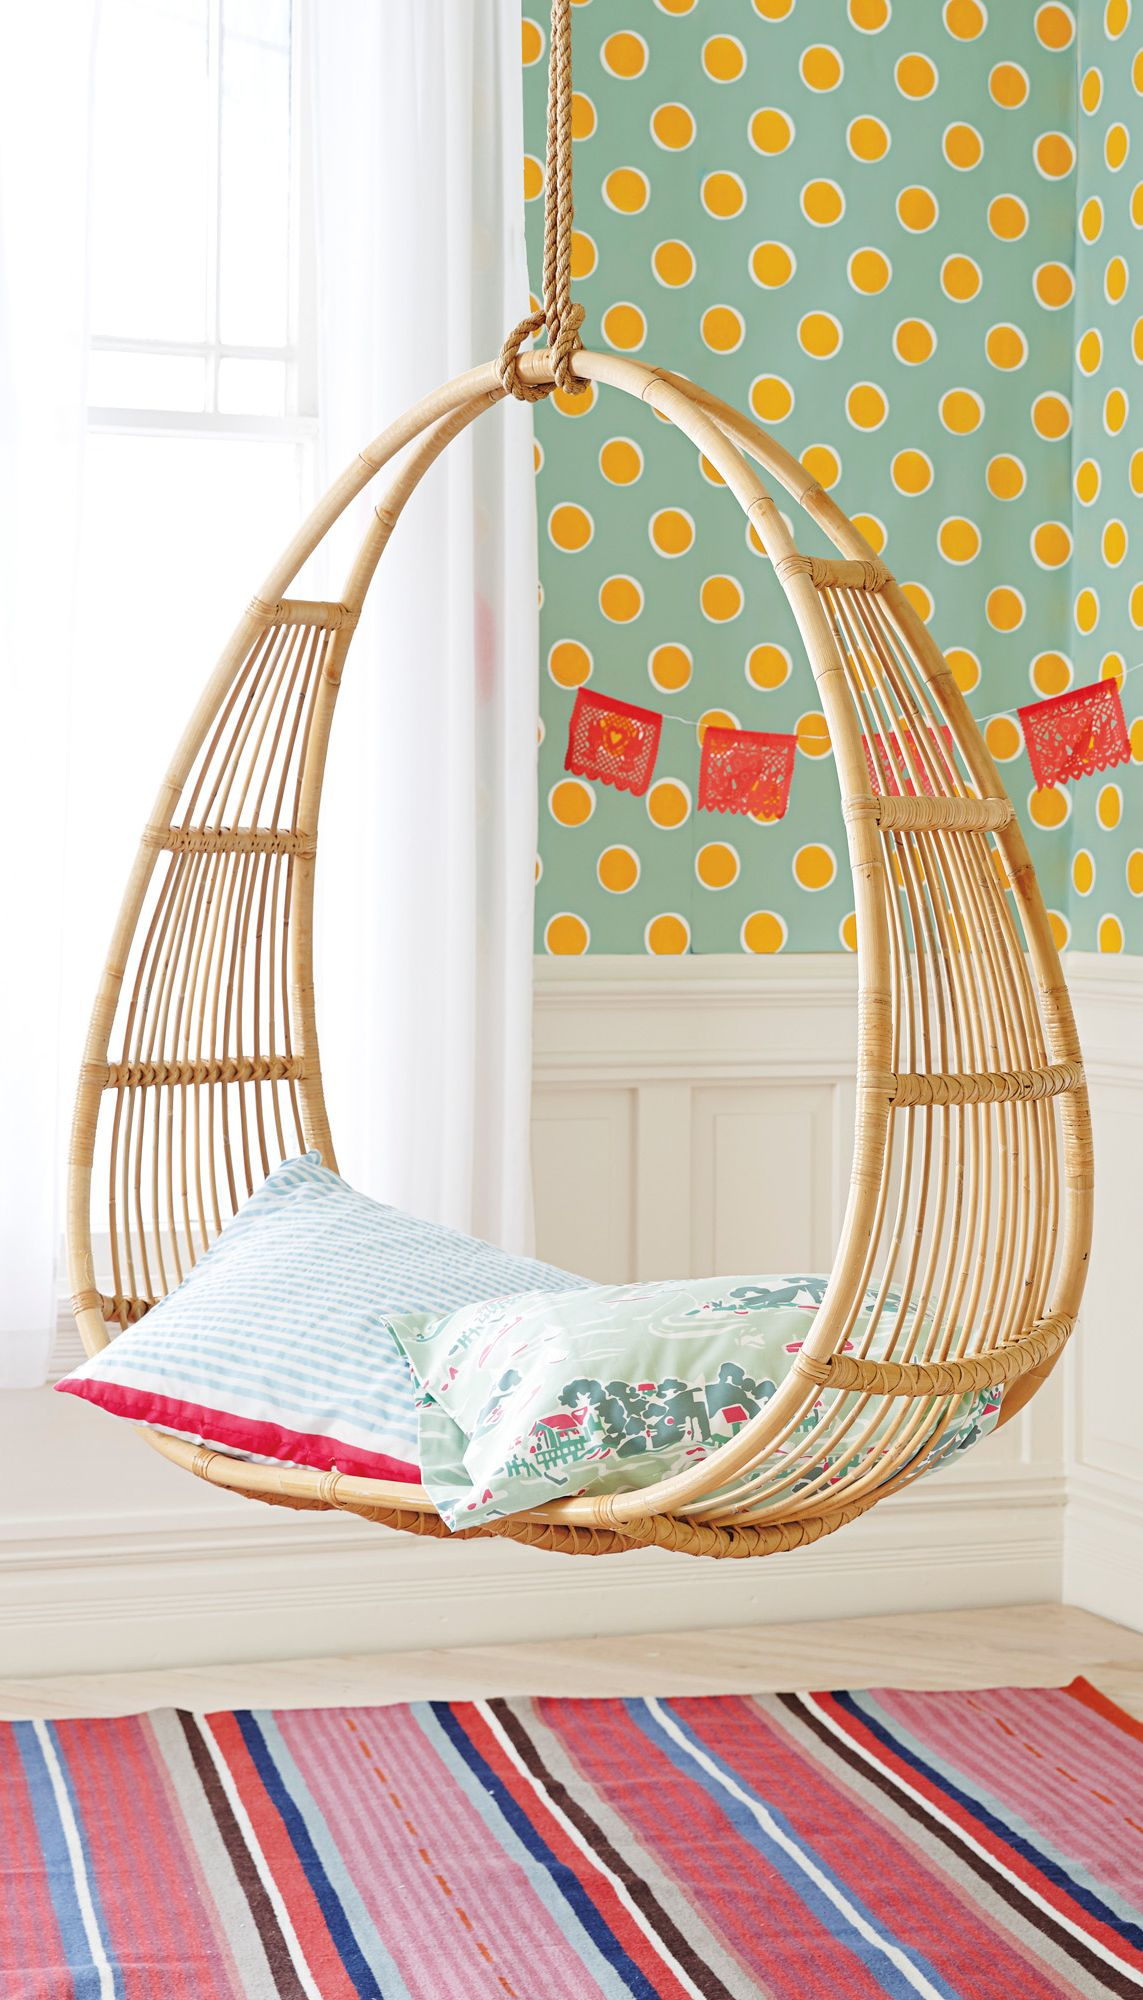 Superb Round Hanging Chair Hanging Chair From Ceiling, Hanging Chairs, Hanging  Basket, Swing Chairs